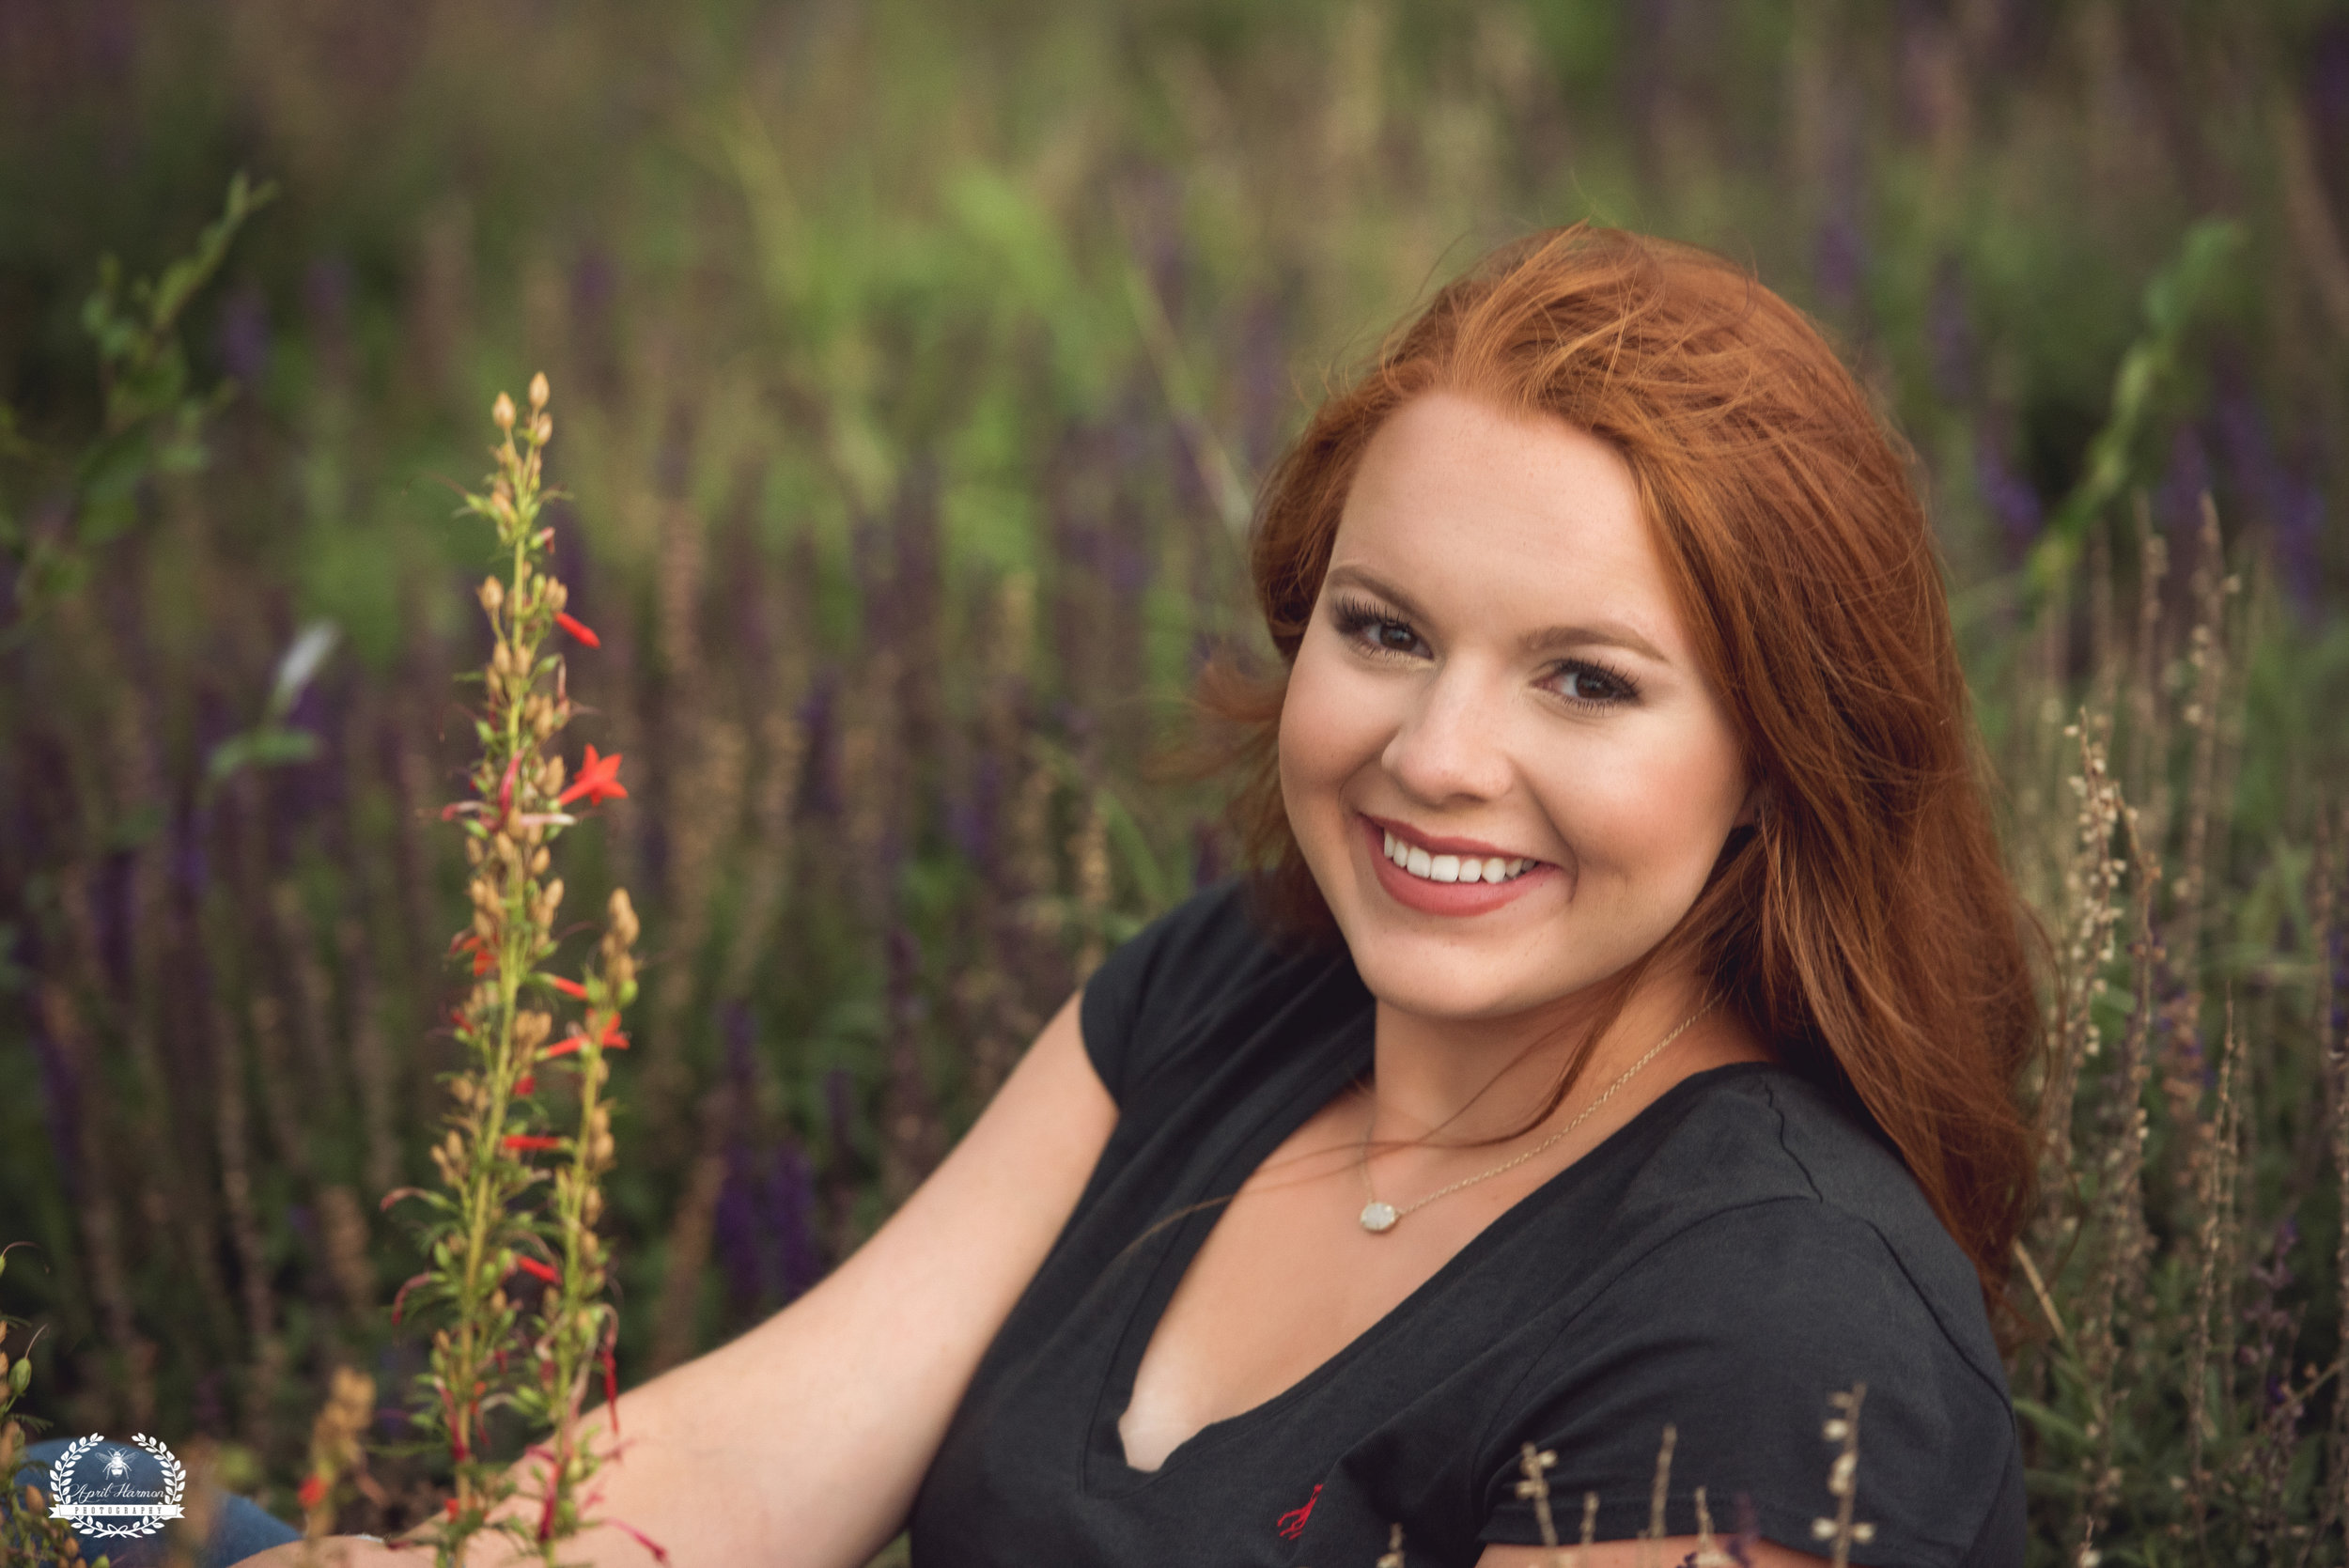 southwest-kansas-senior-photography60.jpg